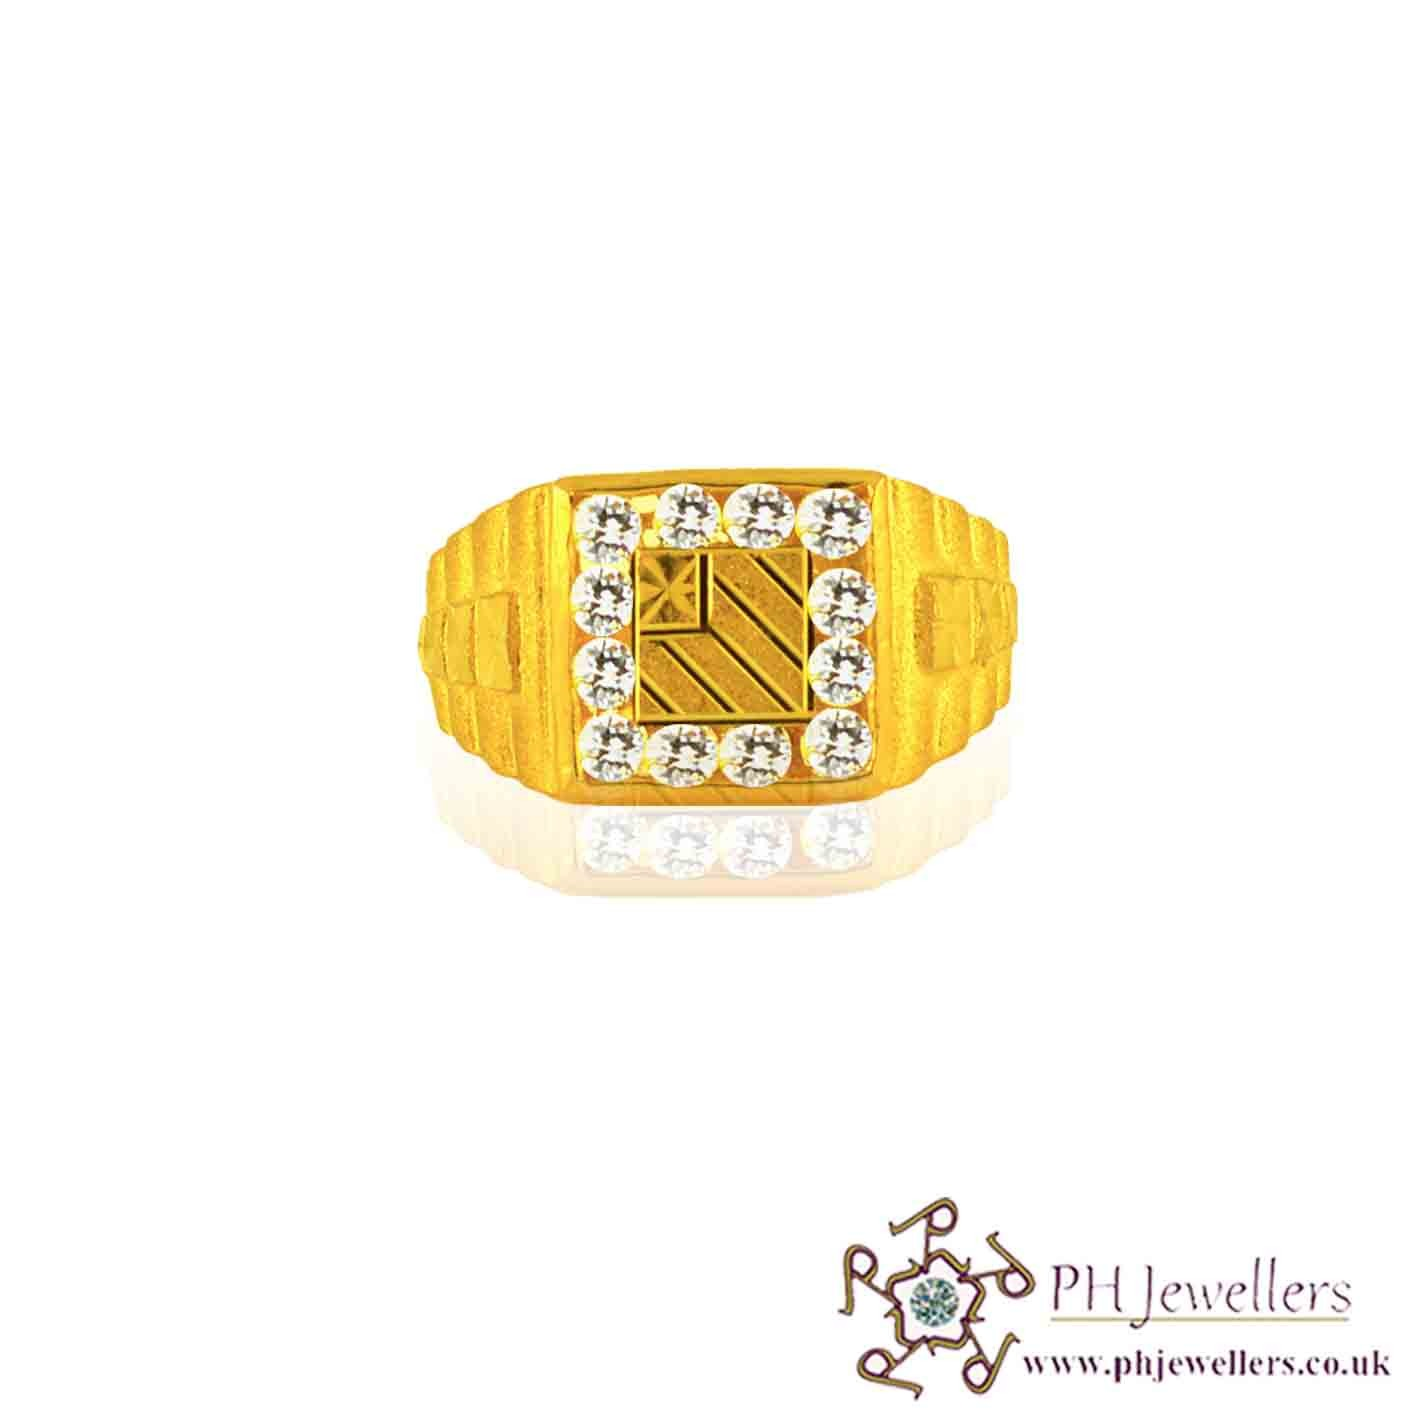 22ct 916 Hallmark Yellow Gold Square Size S,T Ring CZ GSR2